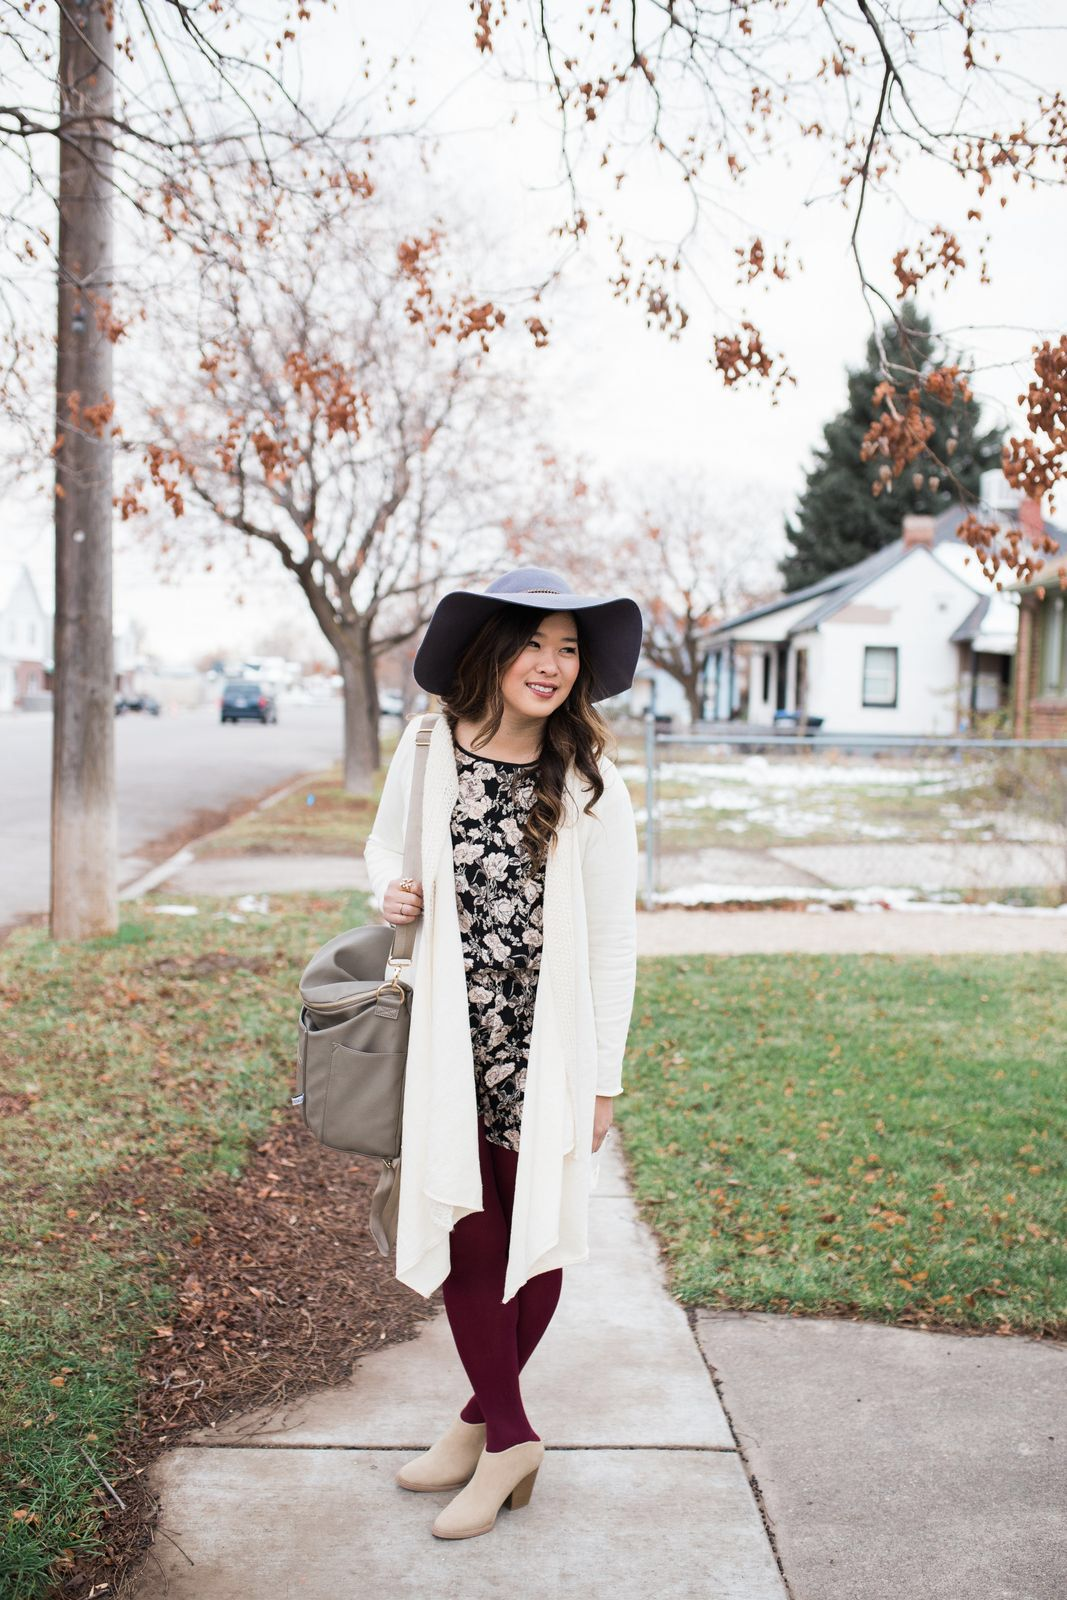 444ddbf392557 Short Rompers For Winter and Stylish Mules + $100 Payless Shoes Giveaway!